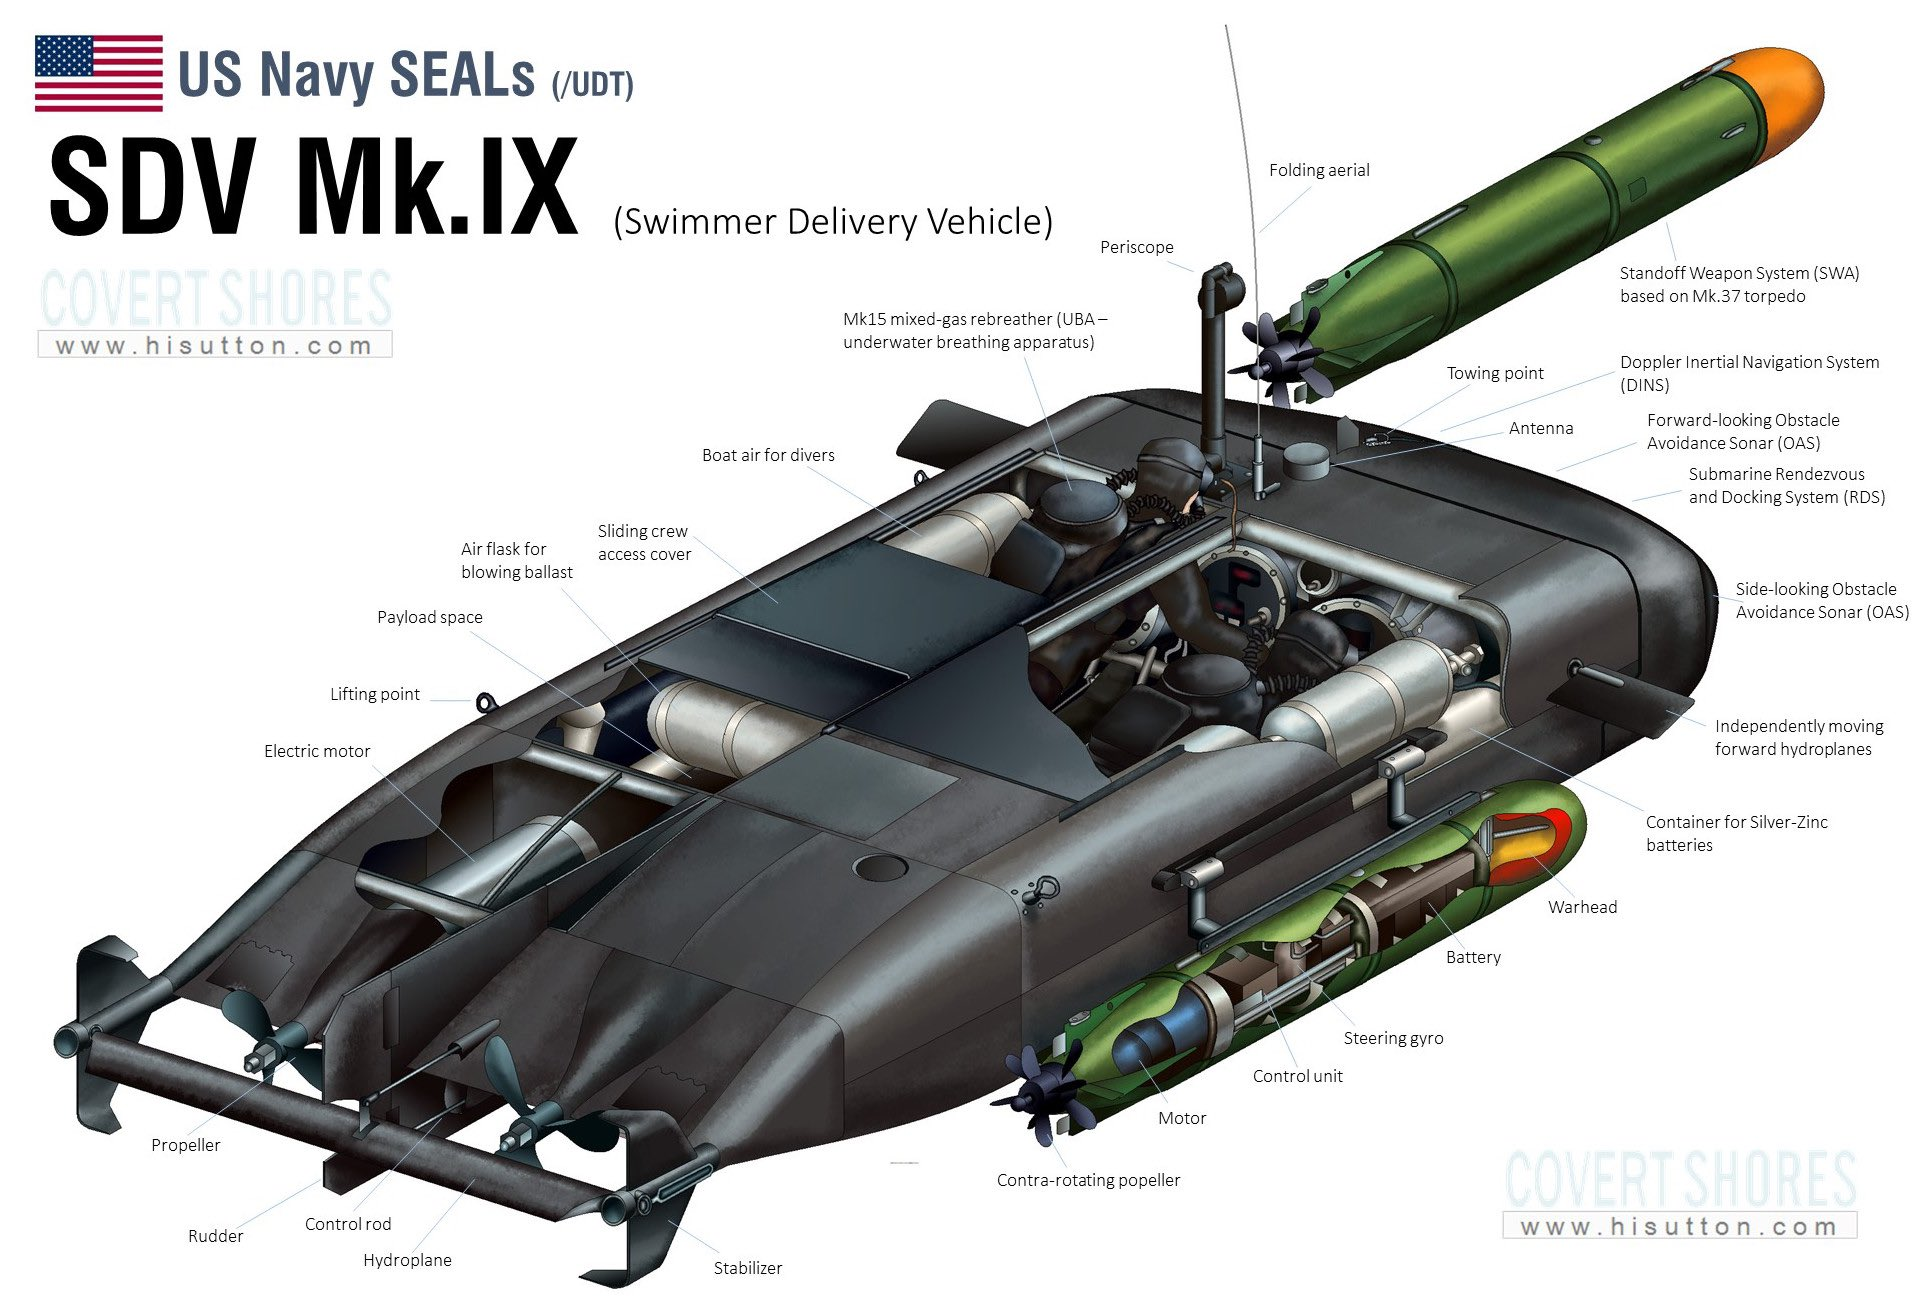 abraxas spa on twitter quotsdv mk9 seals torpedo armed